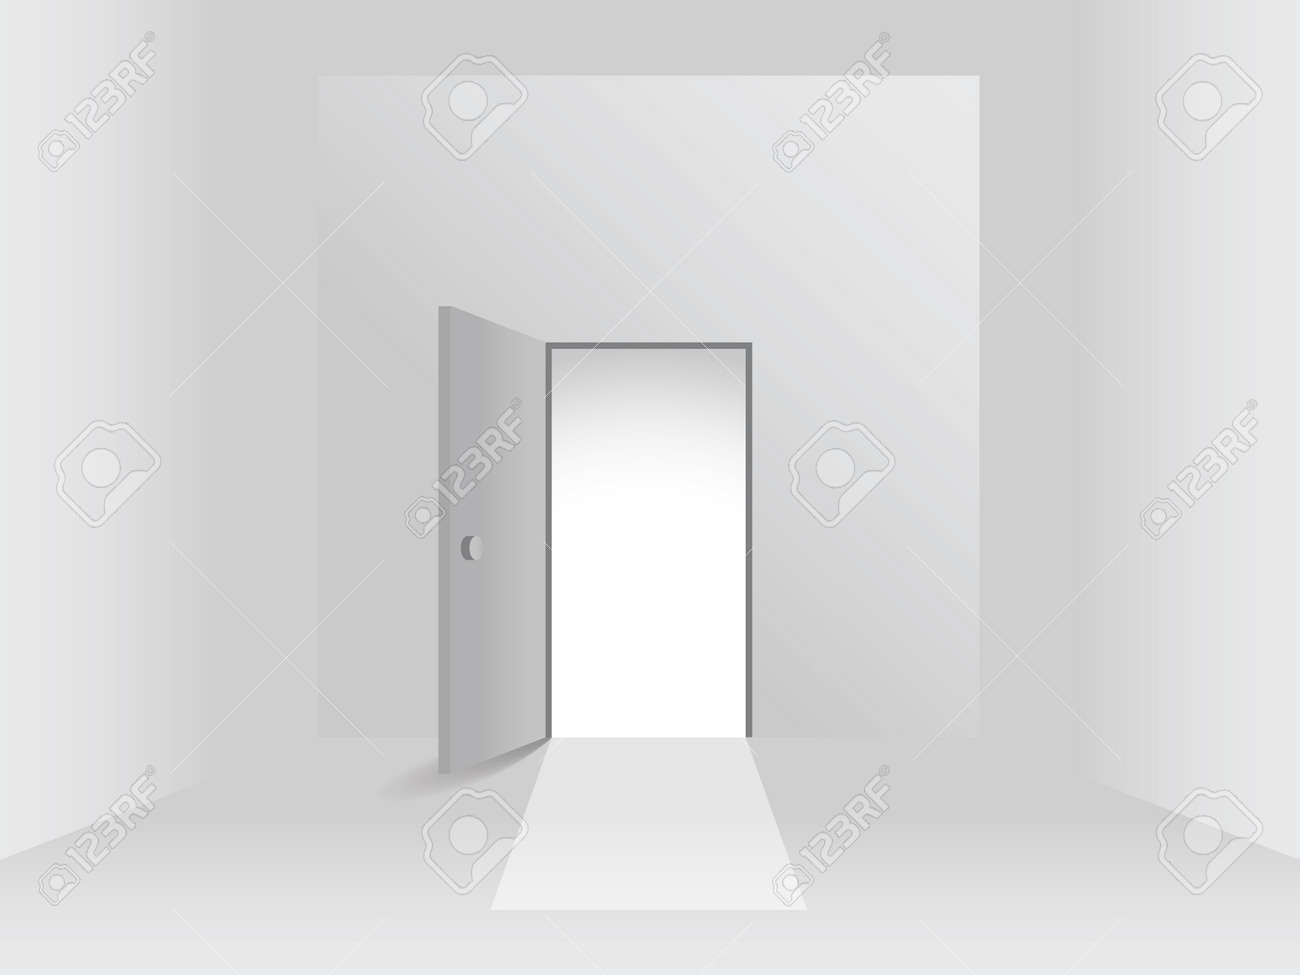 Room with open door, illustration Stock Vector - 16857739